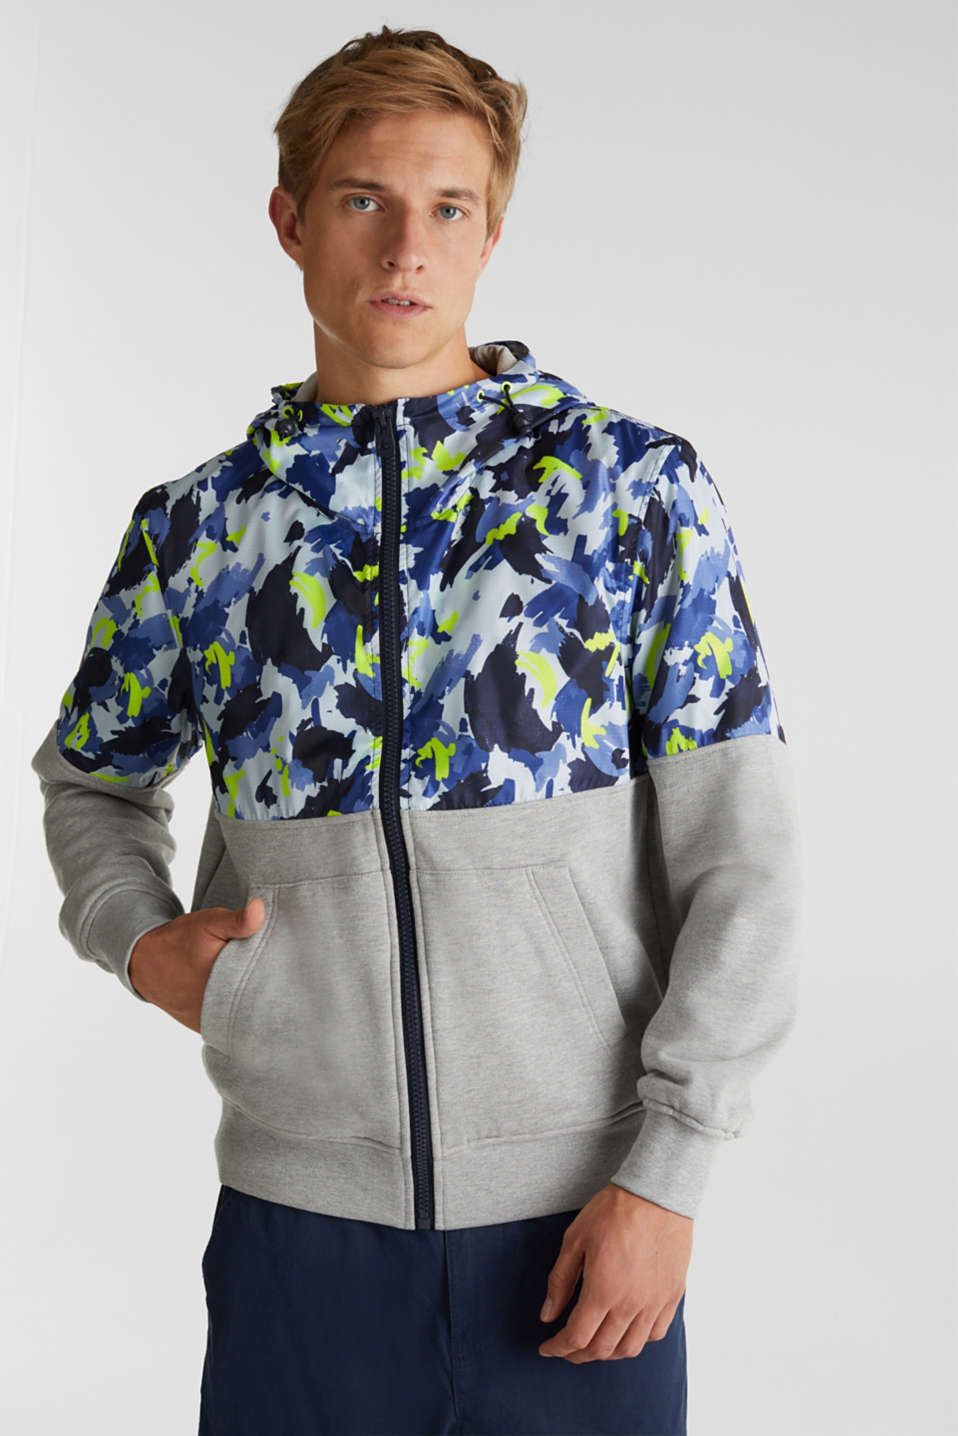 edc - Hooded jacket made of sweatshirt fabric and nylon